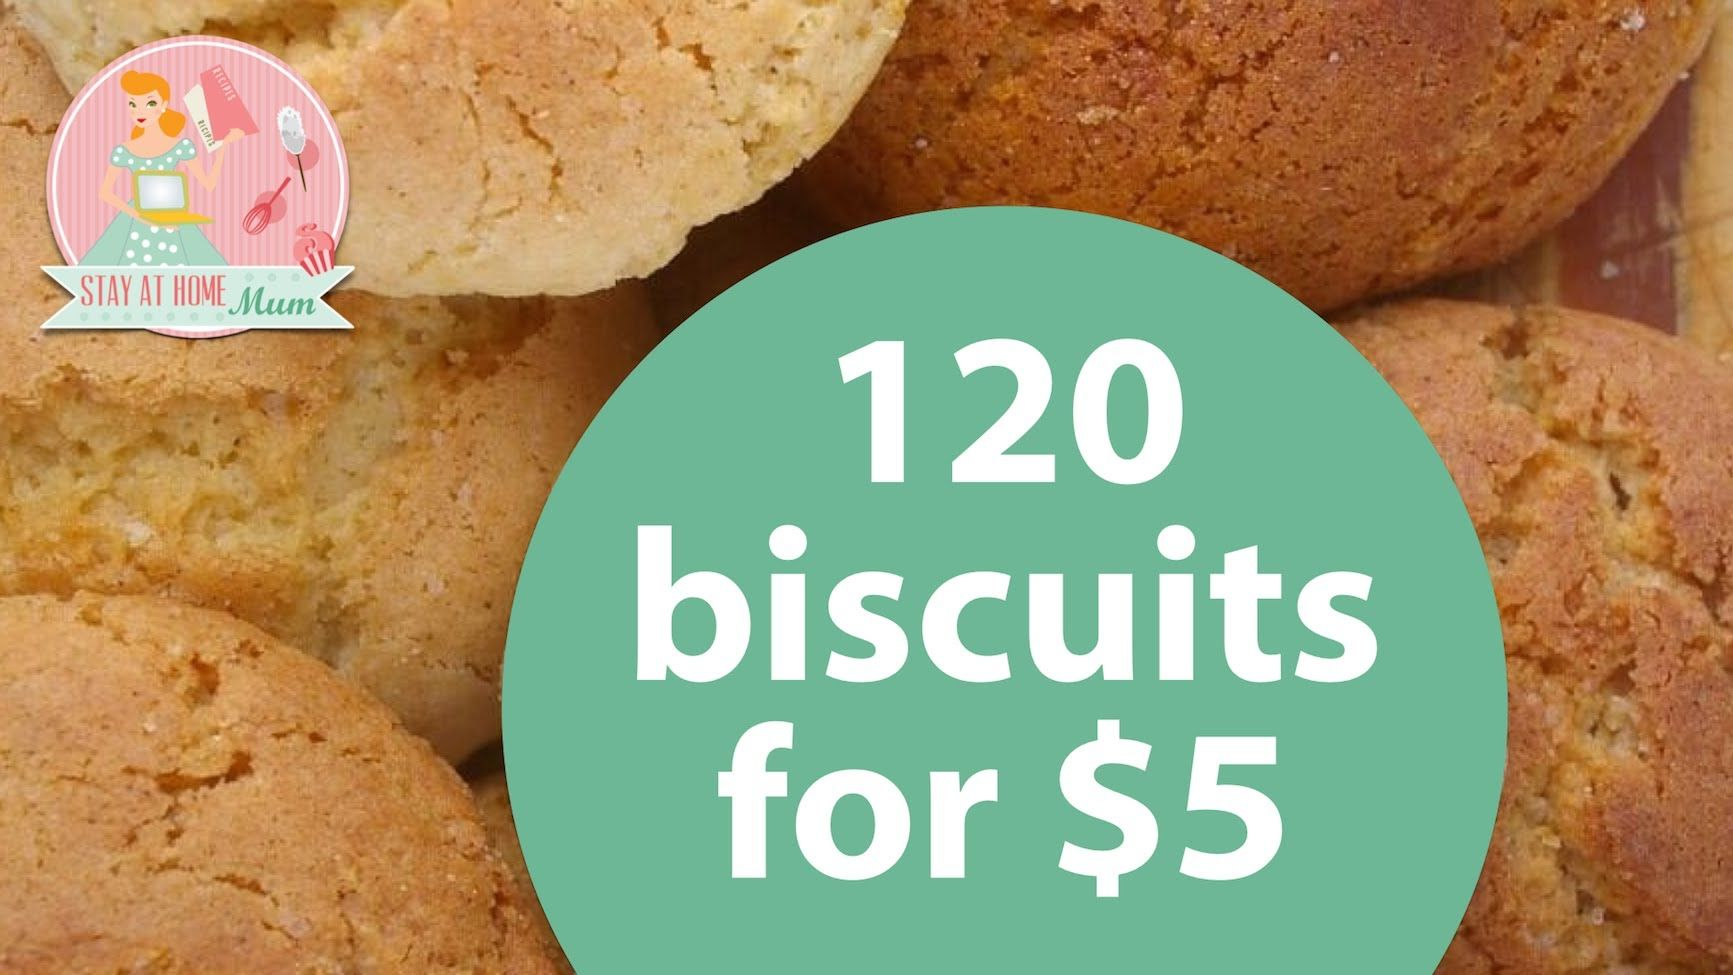 120 Biscuits Cookies For 5 Stay At Home Mum Recipes Biscuits Cookies Videos Cooking Bulk Biscuit Recipe Bicuit Recipe Condensed Milk Cookies